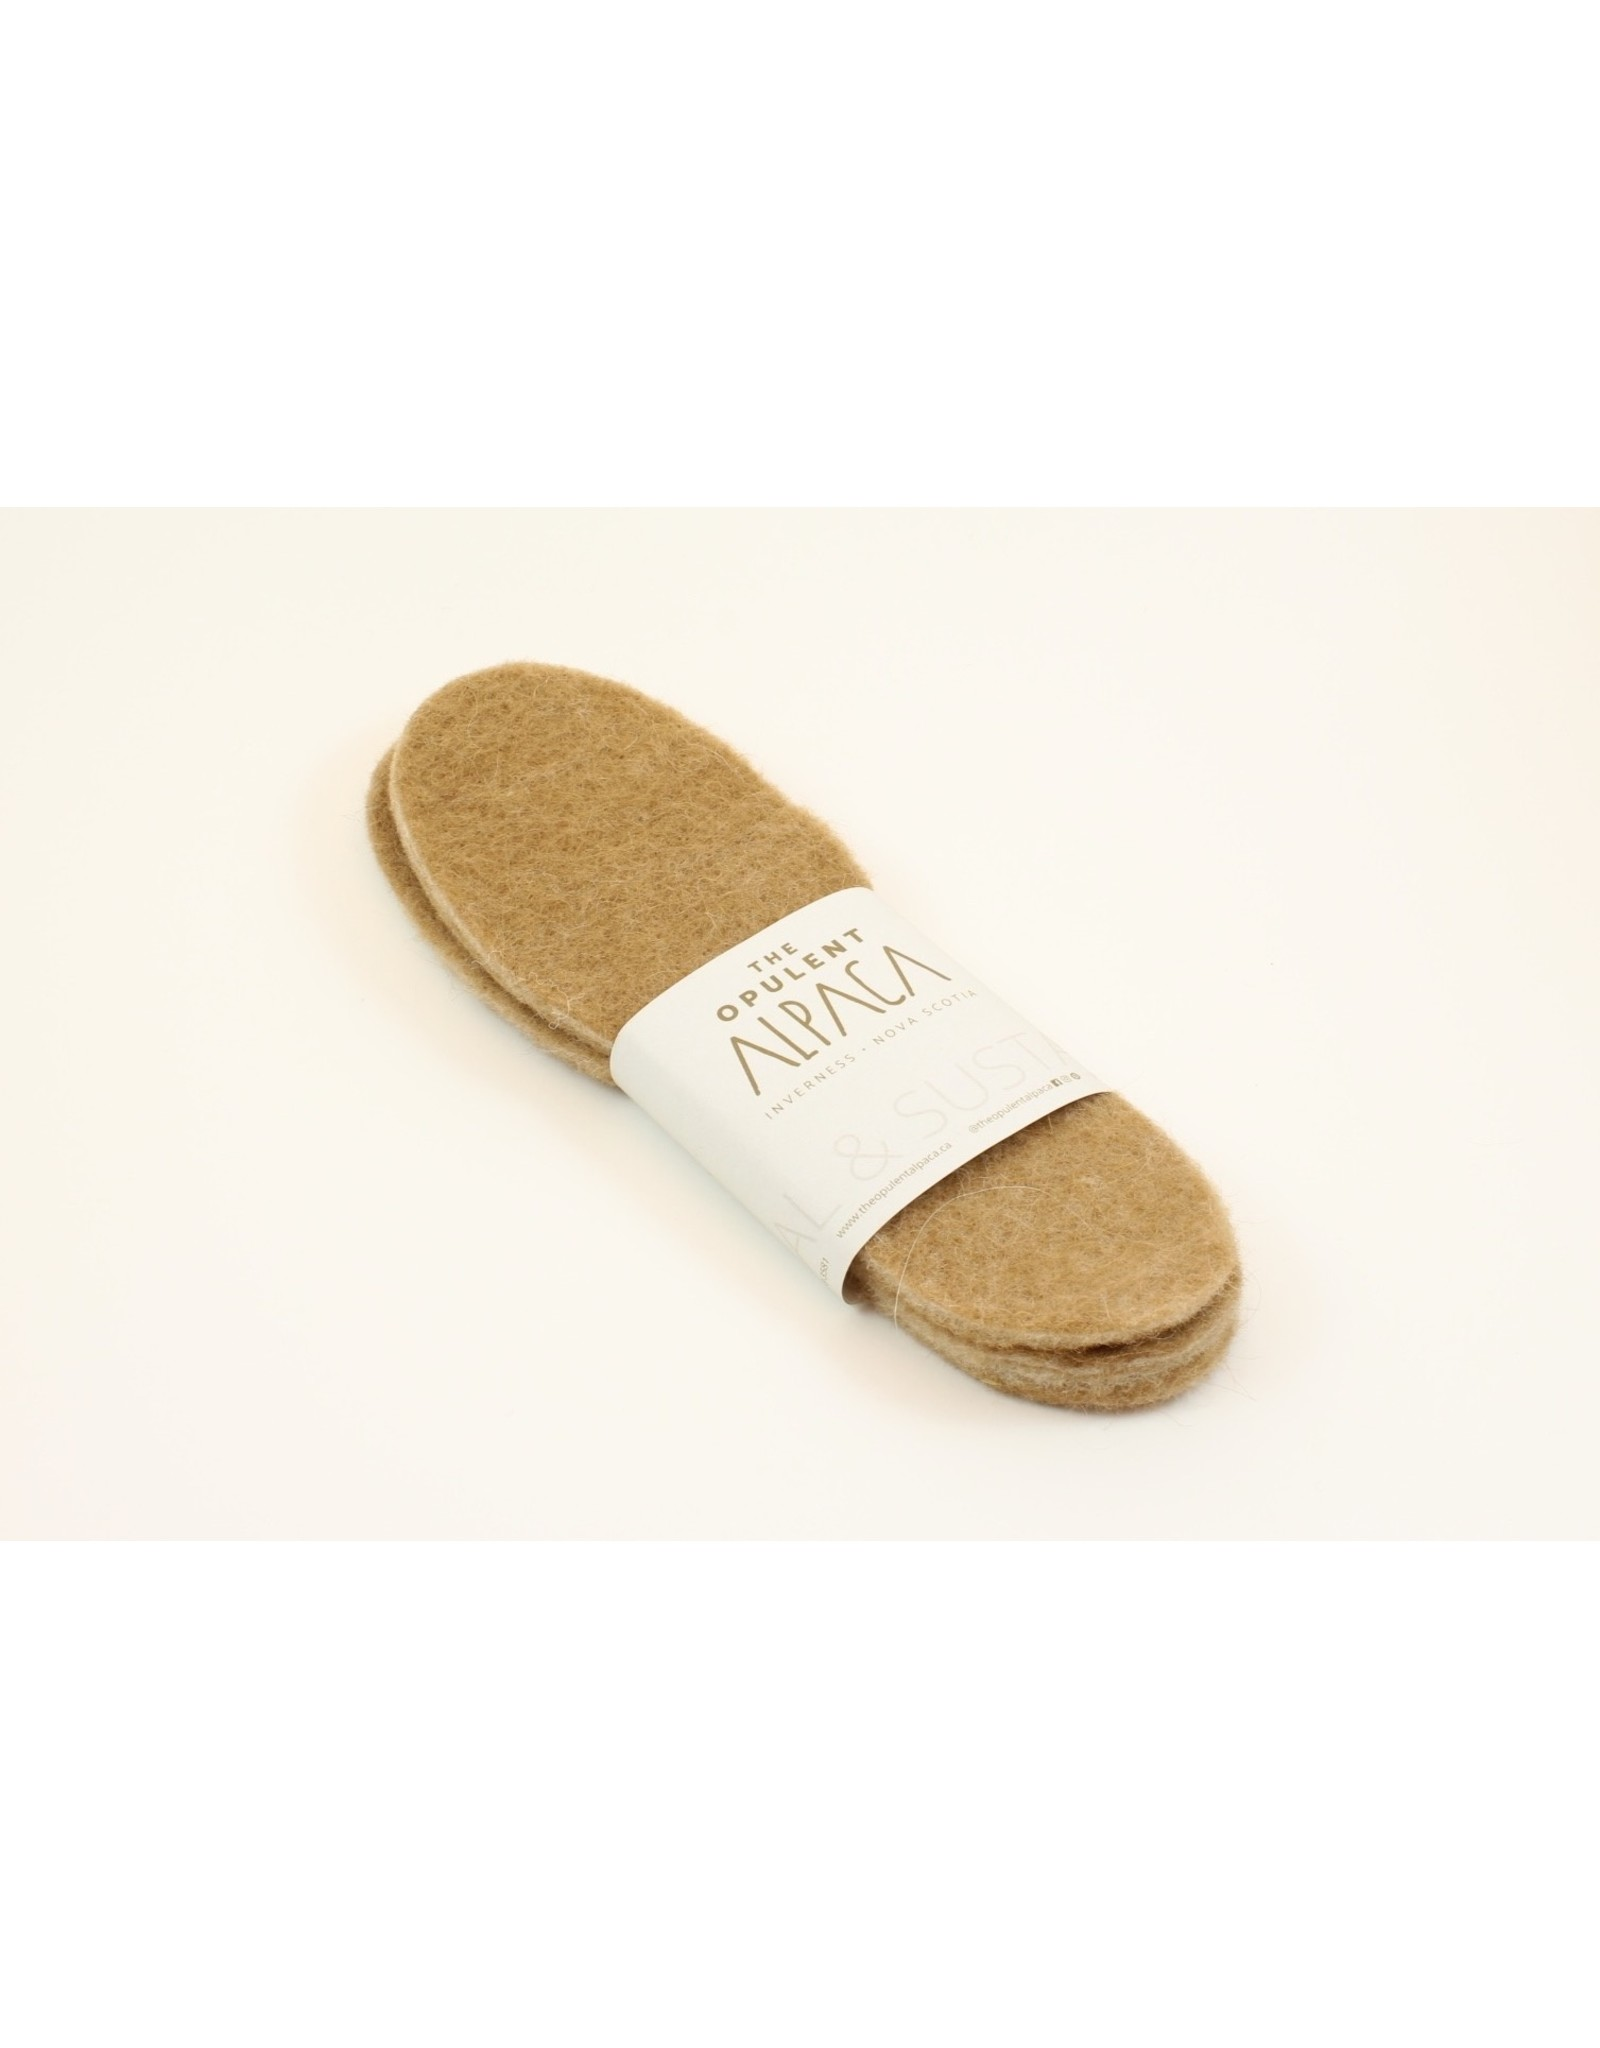 The Opulent Alpaca Wool Felted Insoles by The Opulent Alpaca